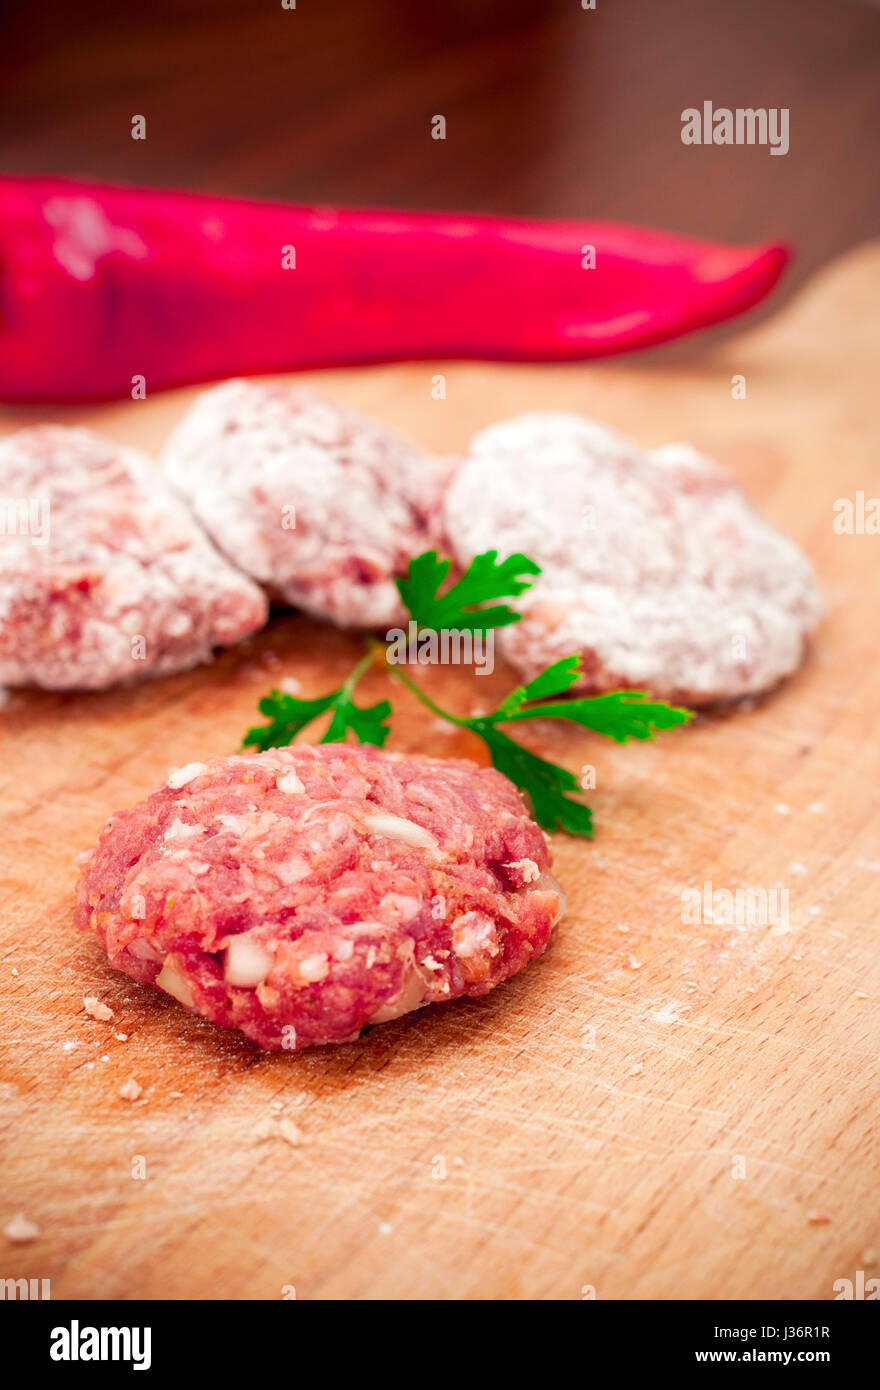 meatballs and red pepper and parsley - Stock Image